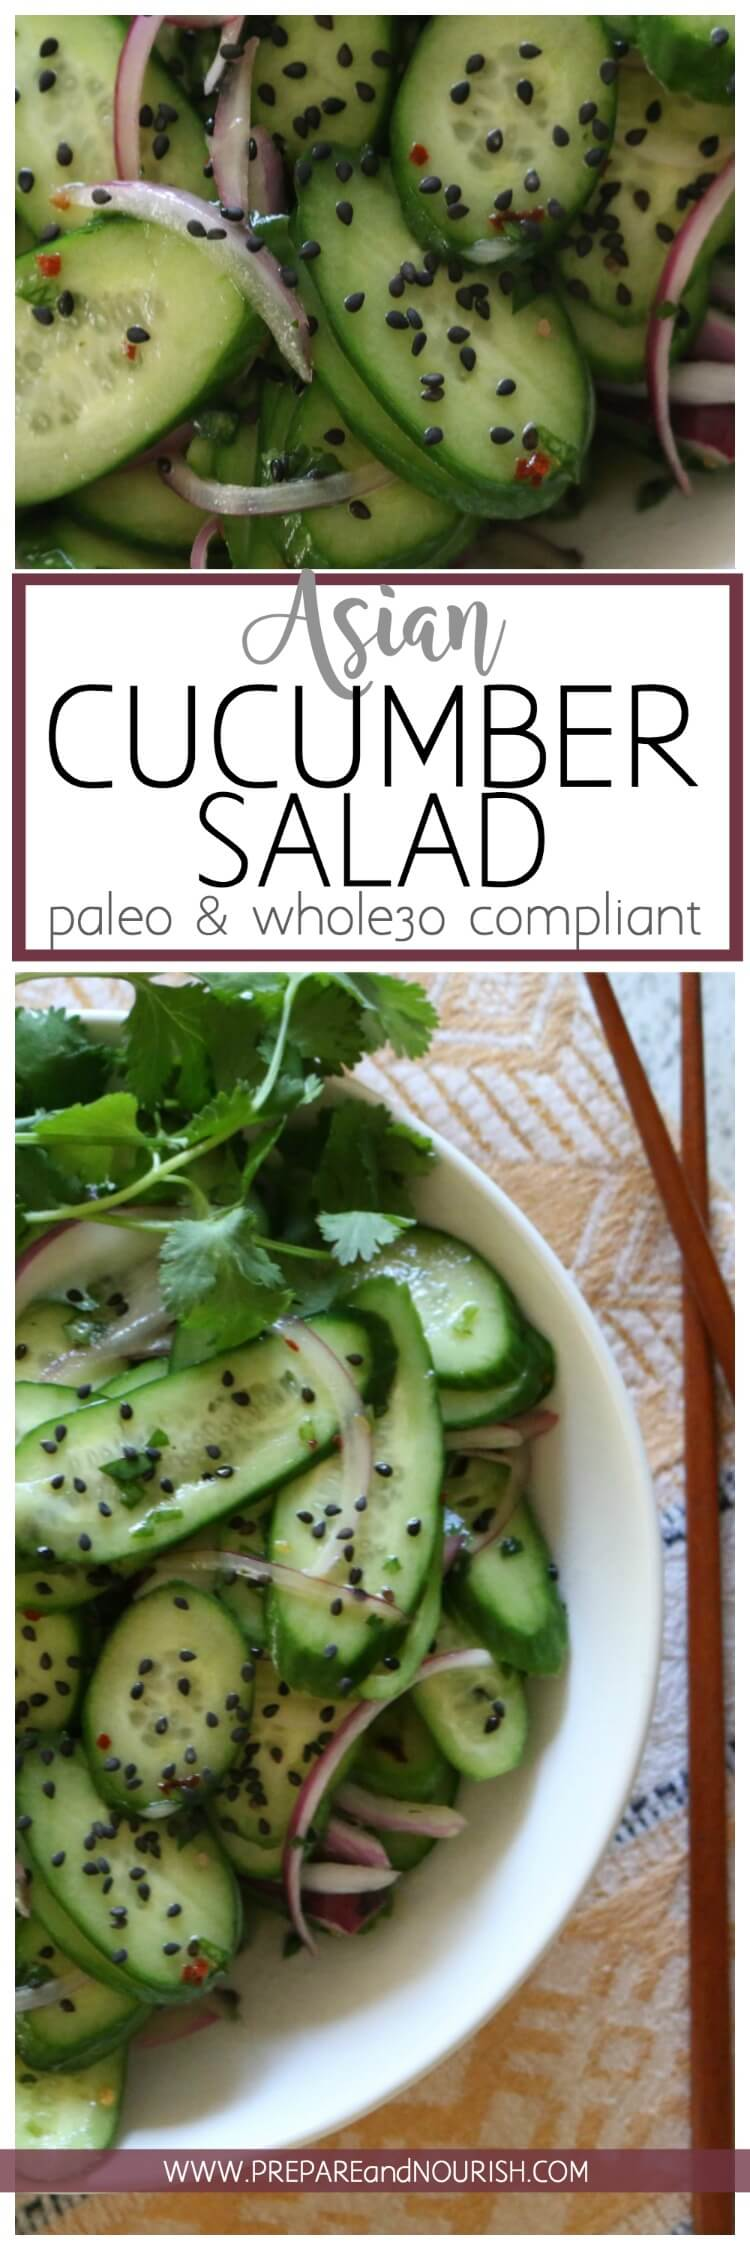 Asian Cucumber Salad - Thinly sliced cucumbers and red onions tossed with a white wine vinaigrette dressing makes a light and refreshing salad. Top with rich black sesame seeds for major flavor action. #paleo #whole30